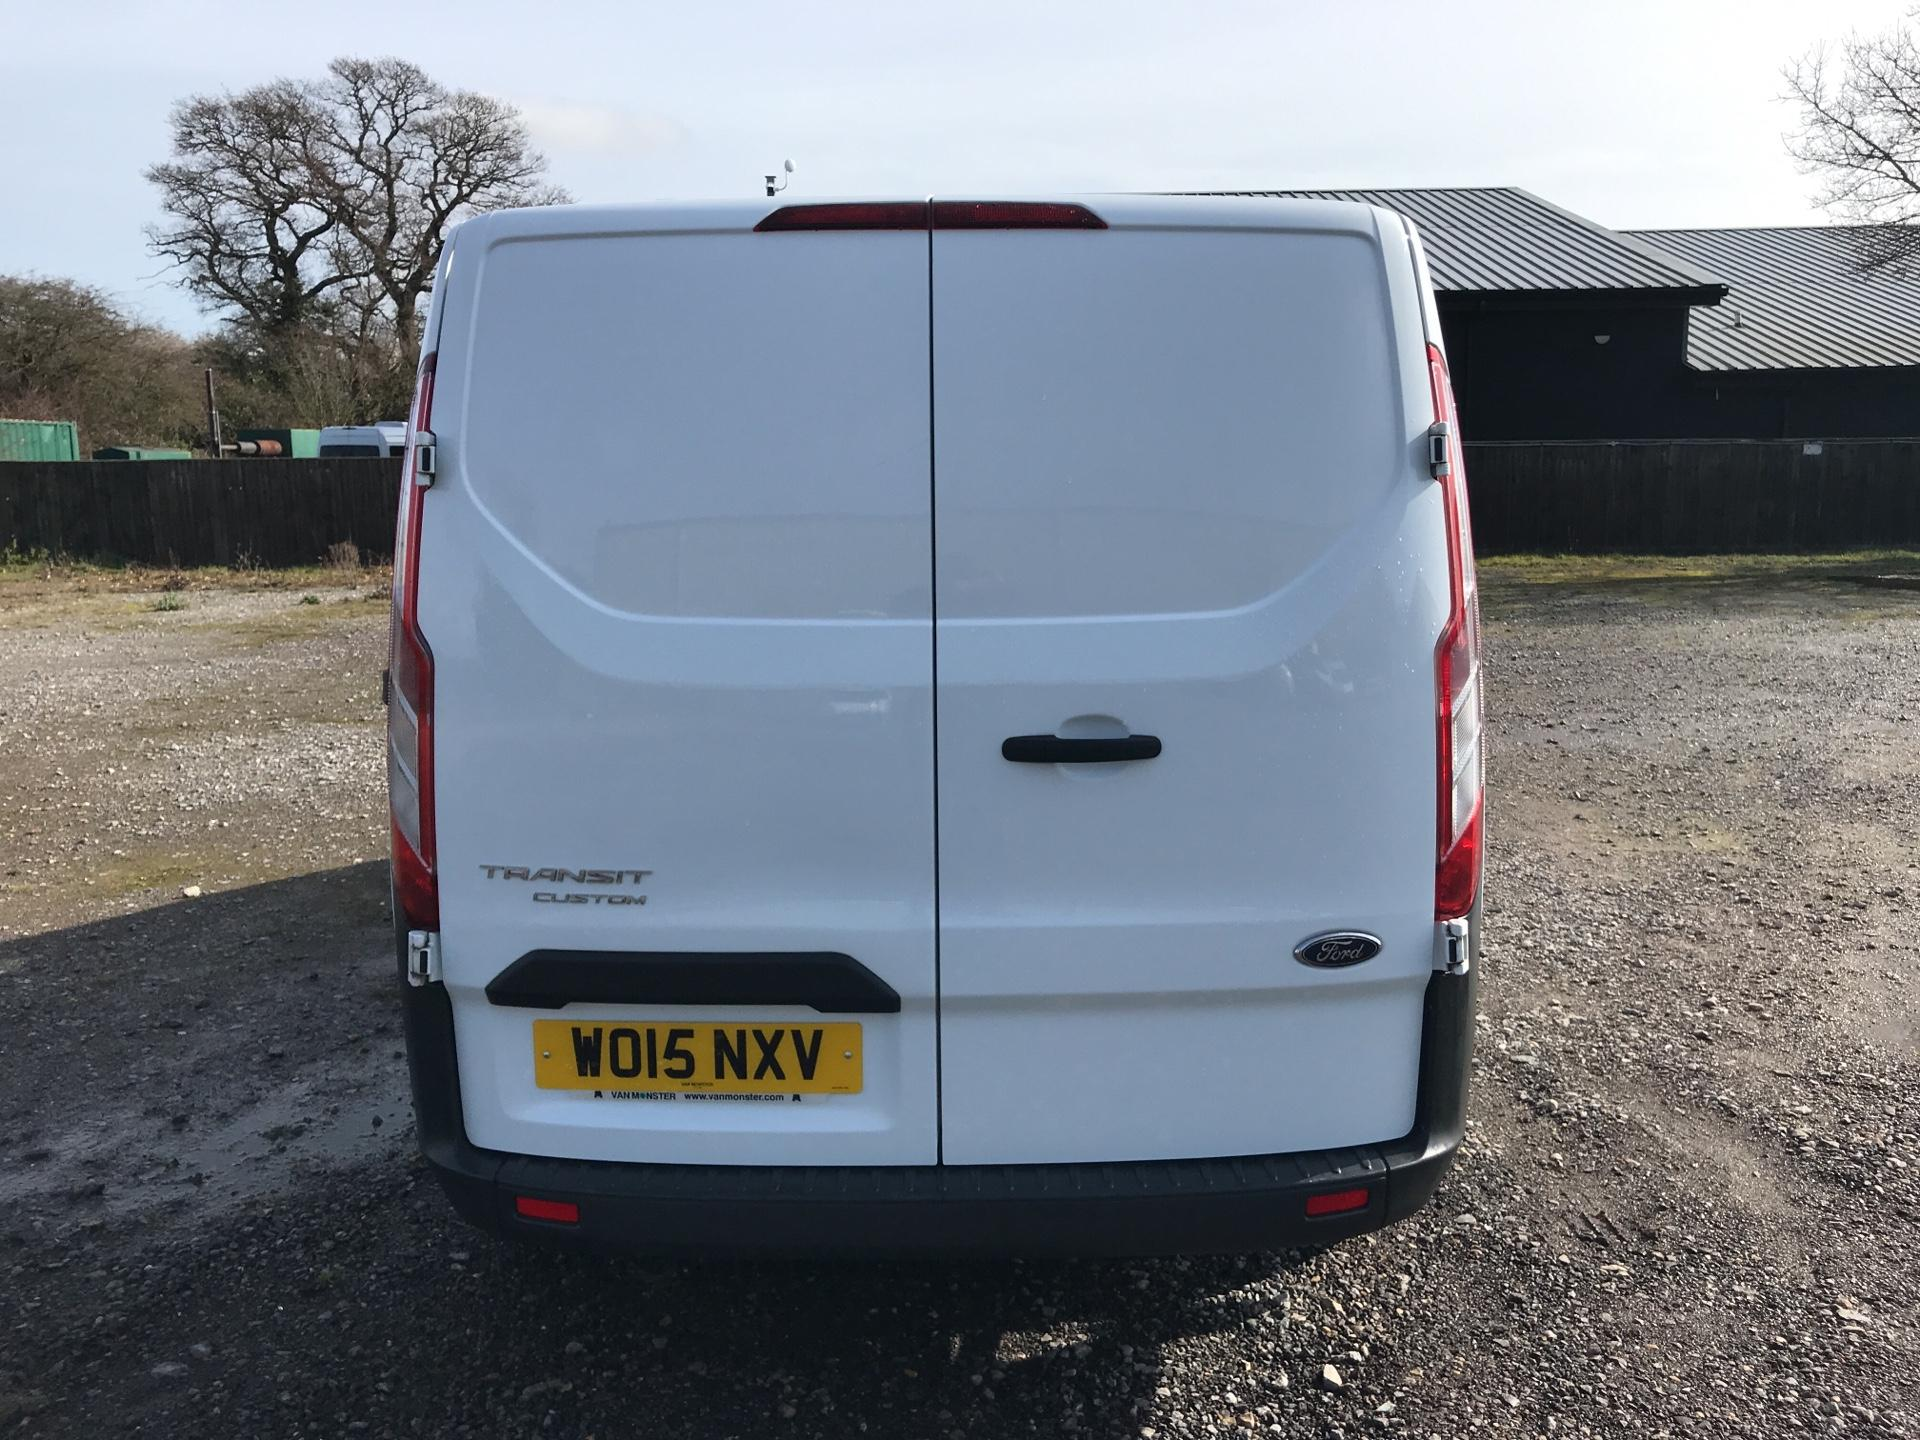 2015 Ford Transit Custom 290 L1 DIESEL FWD 2.2 TDCI 100PS LOW ROOF VAN EURO 5 (WO15NXV) Thumbnail 4